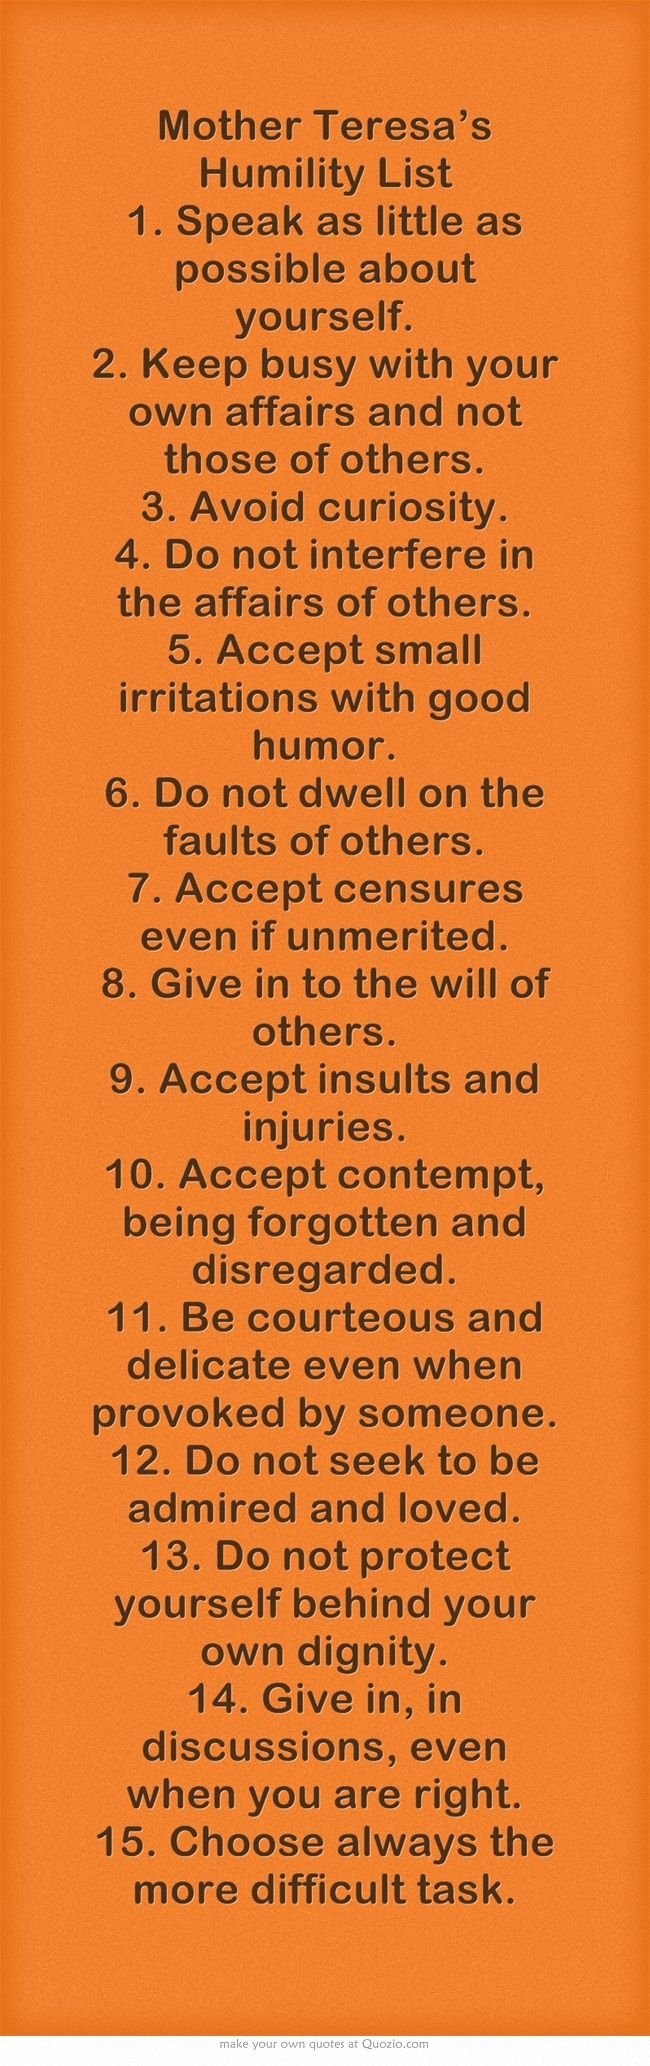 I can live with most of those rules EXCEPT not being curious, curiosity is learning..... oh yeah and one more thing if you injure me or insult me im gonna go psycho on you!!! Lol jk